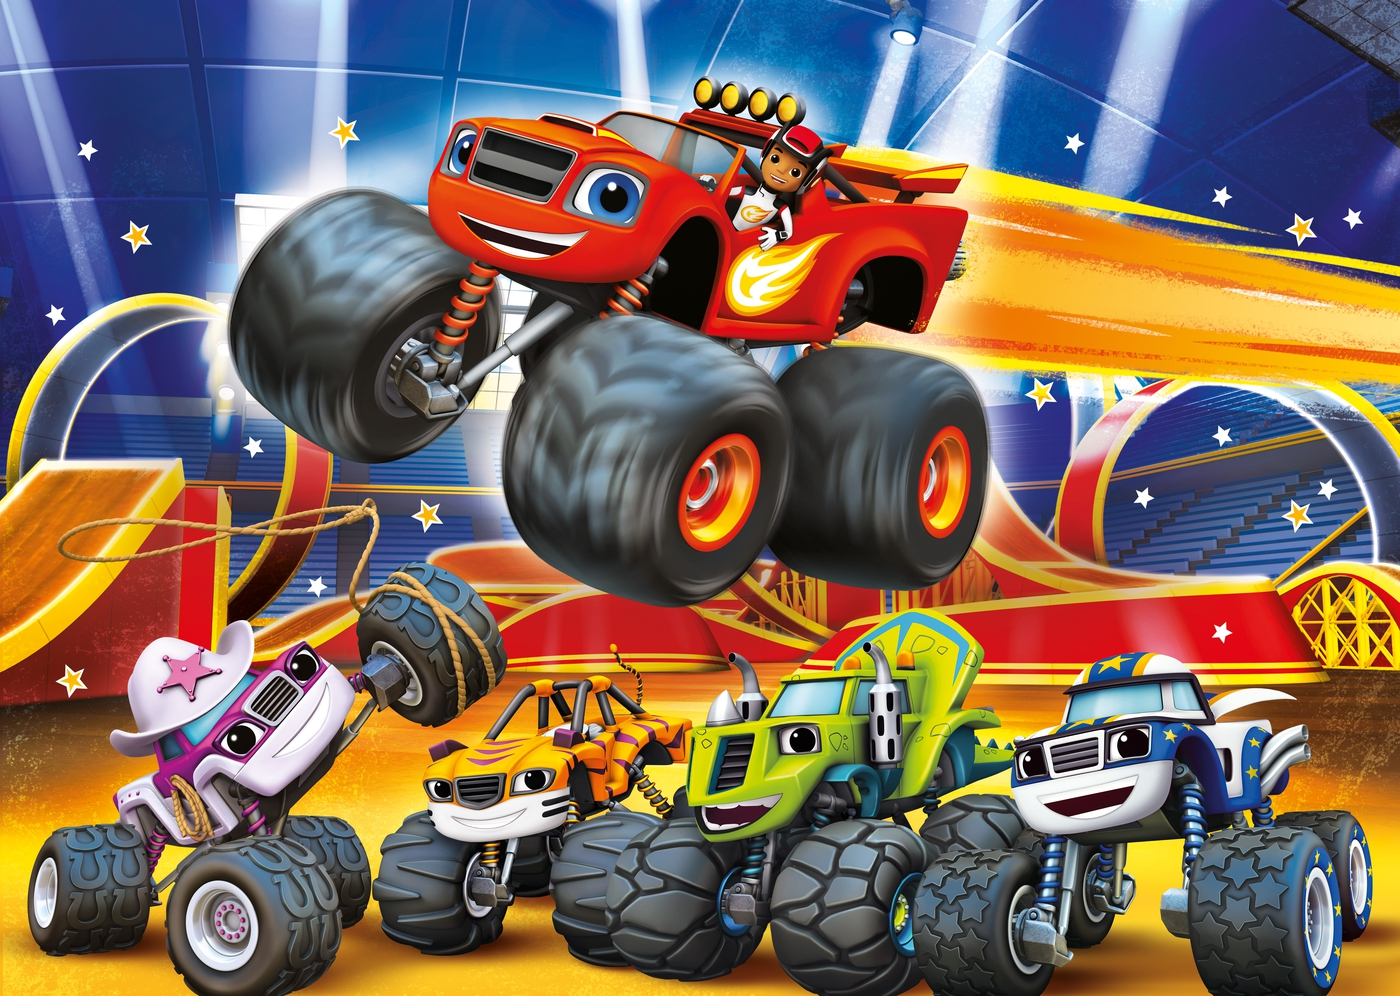 This is a photo of Fabulous Pictures of Blaze and the Monster Machines